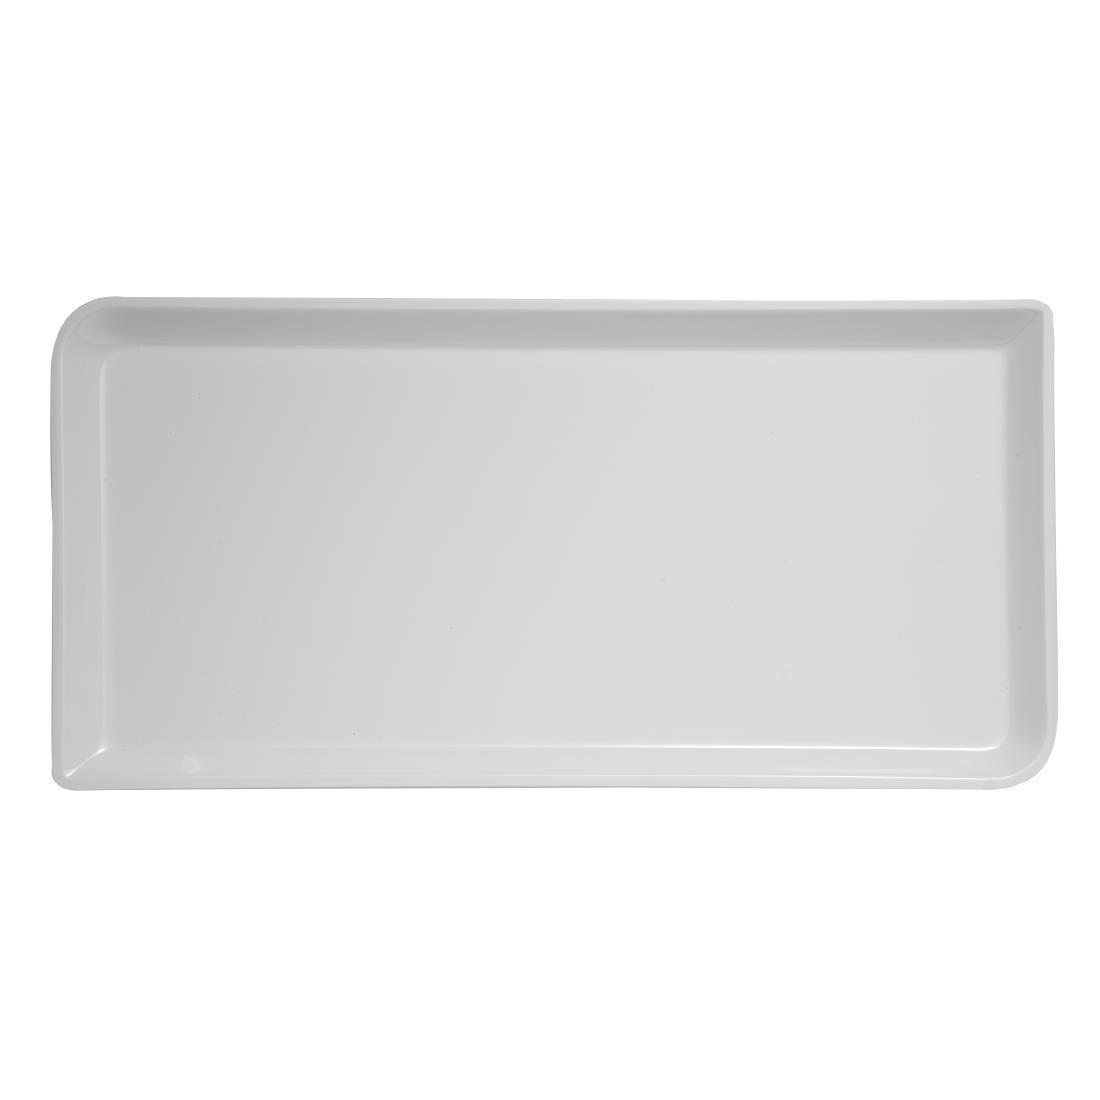 APS White Counter System 440 x 220 x 20mm - Each - GH431